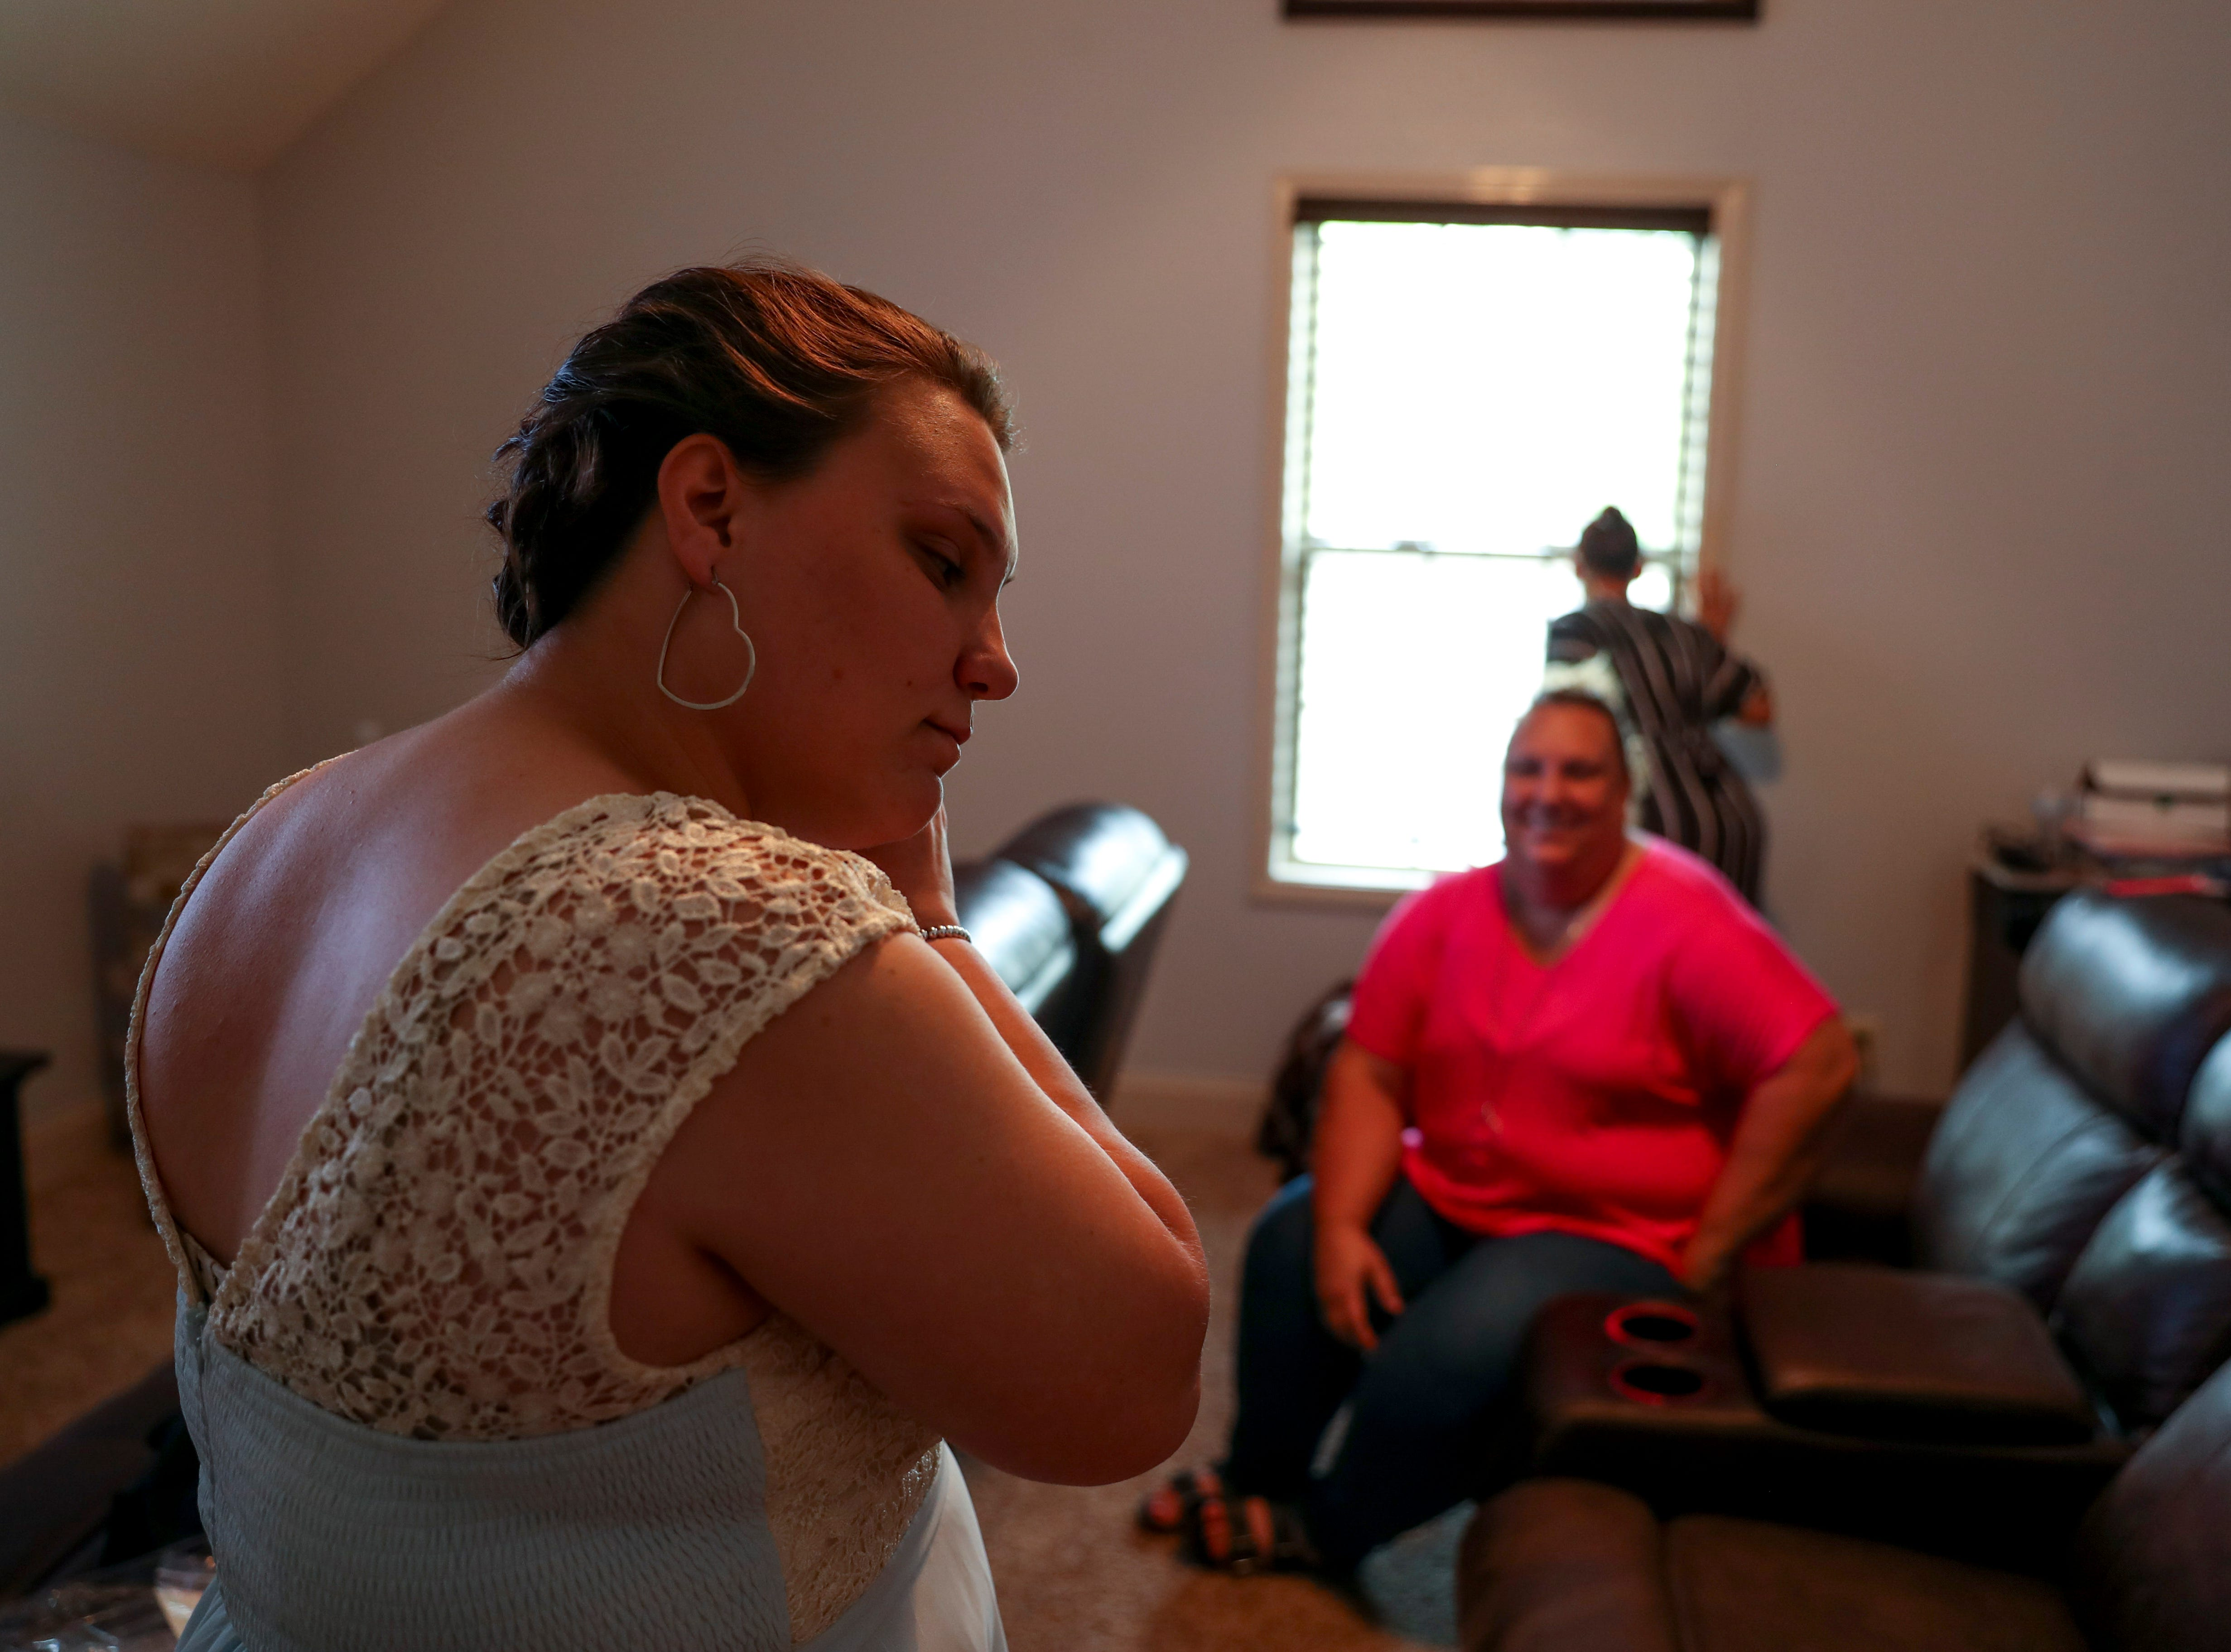 Mia Lopez tries to put on her earrings before sitting down for makeup at the Tejada household in Clarksville, Tenn., on Saturday, May 4, 2019.